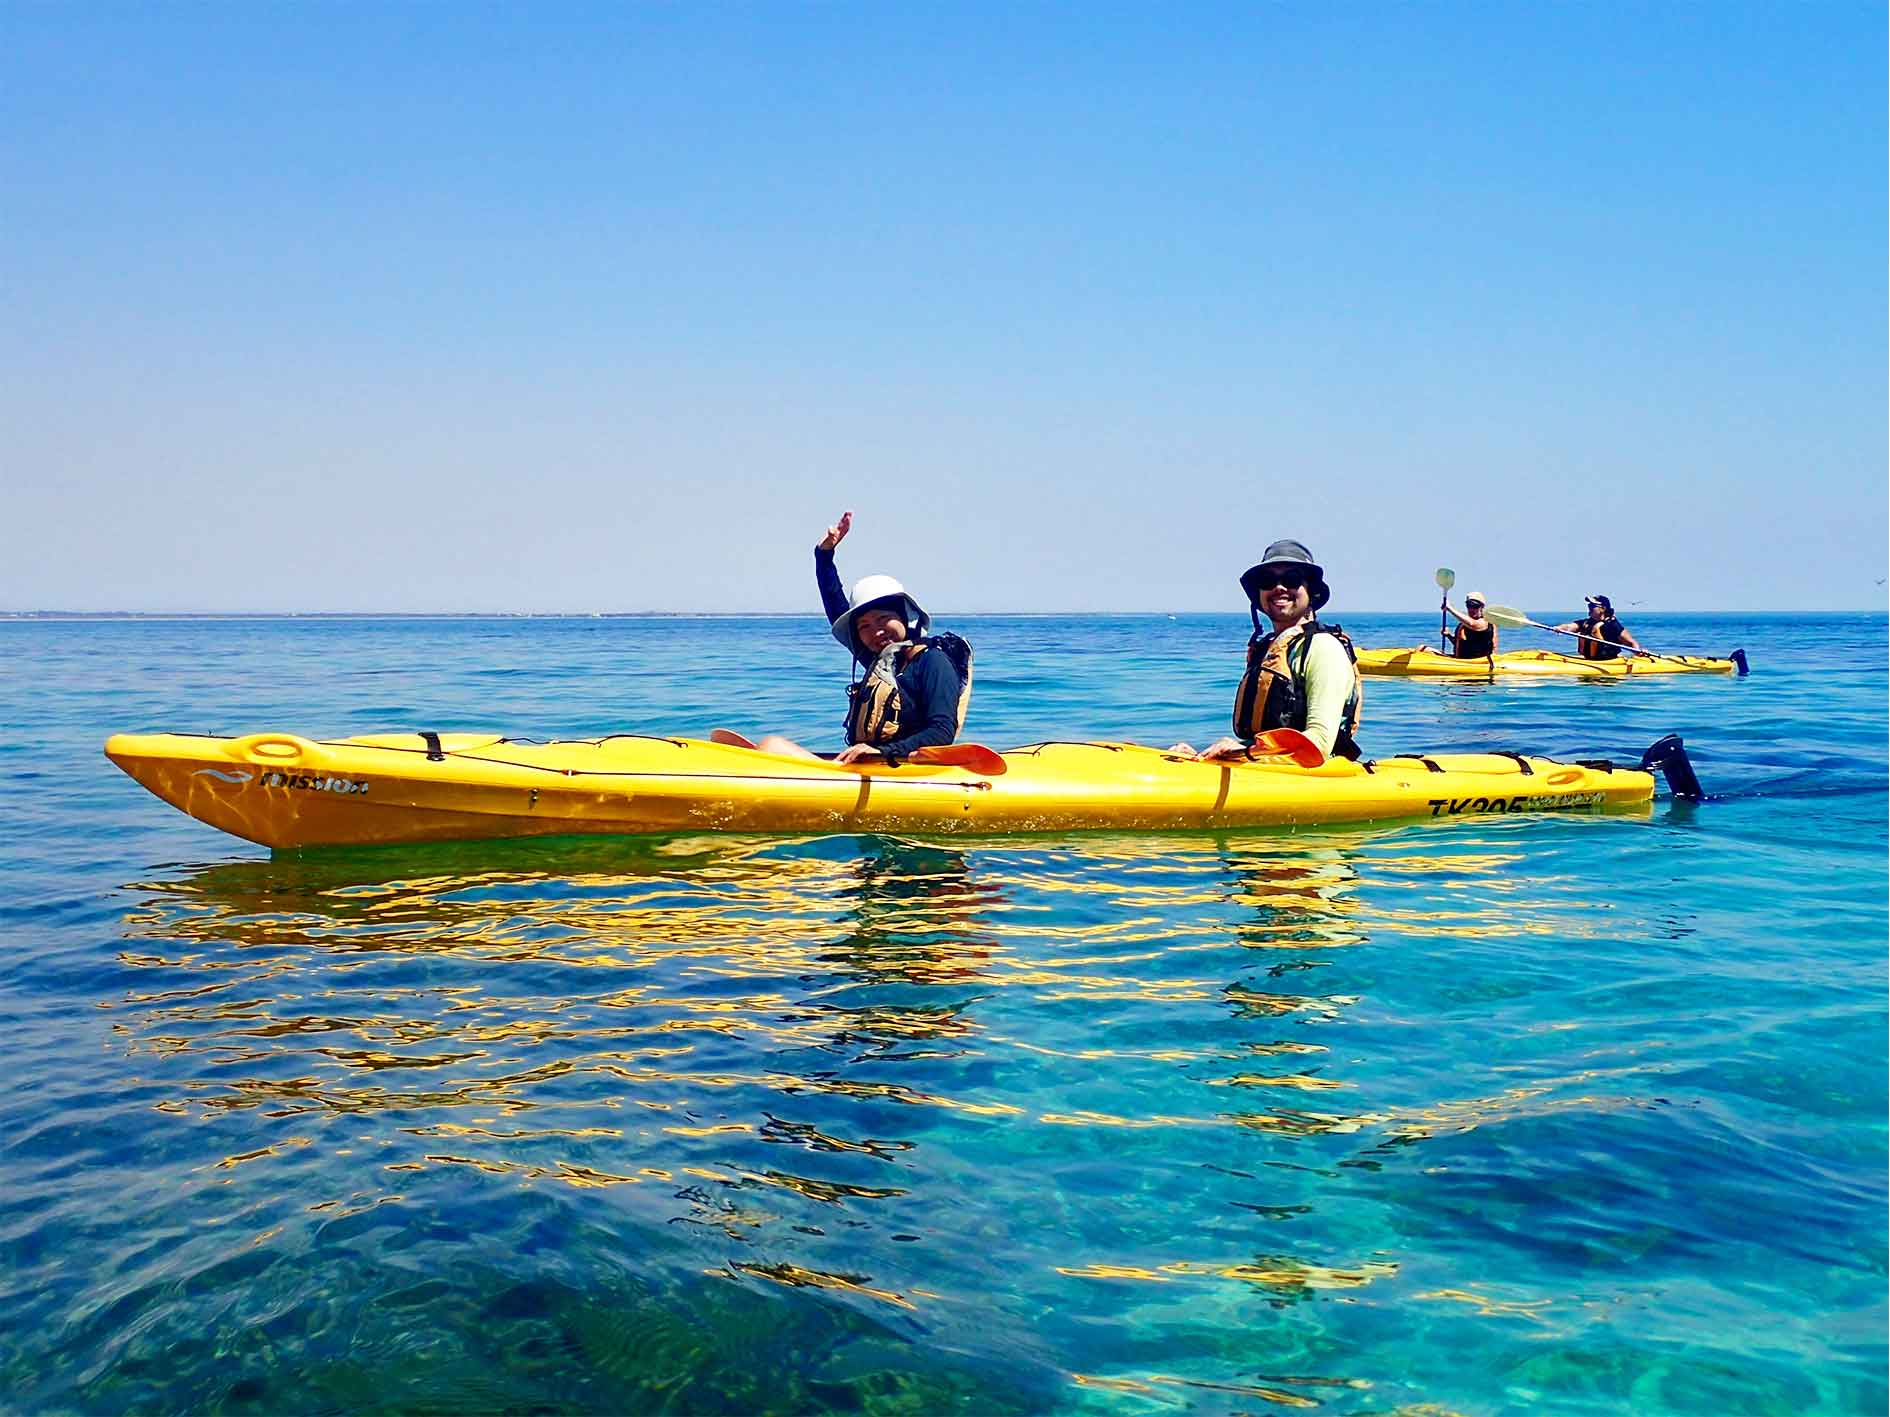 Sea kayak tour Perth, sea kayak eco tour, things to do in perth, Paddle to Penguin, Penguin and Seal Island, Sea kayak tour, eco tour, perth, western australia, rockingham, wild encounters, capricorn sea kayaking, Penguin Island sea kayak